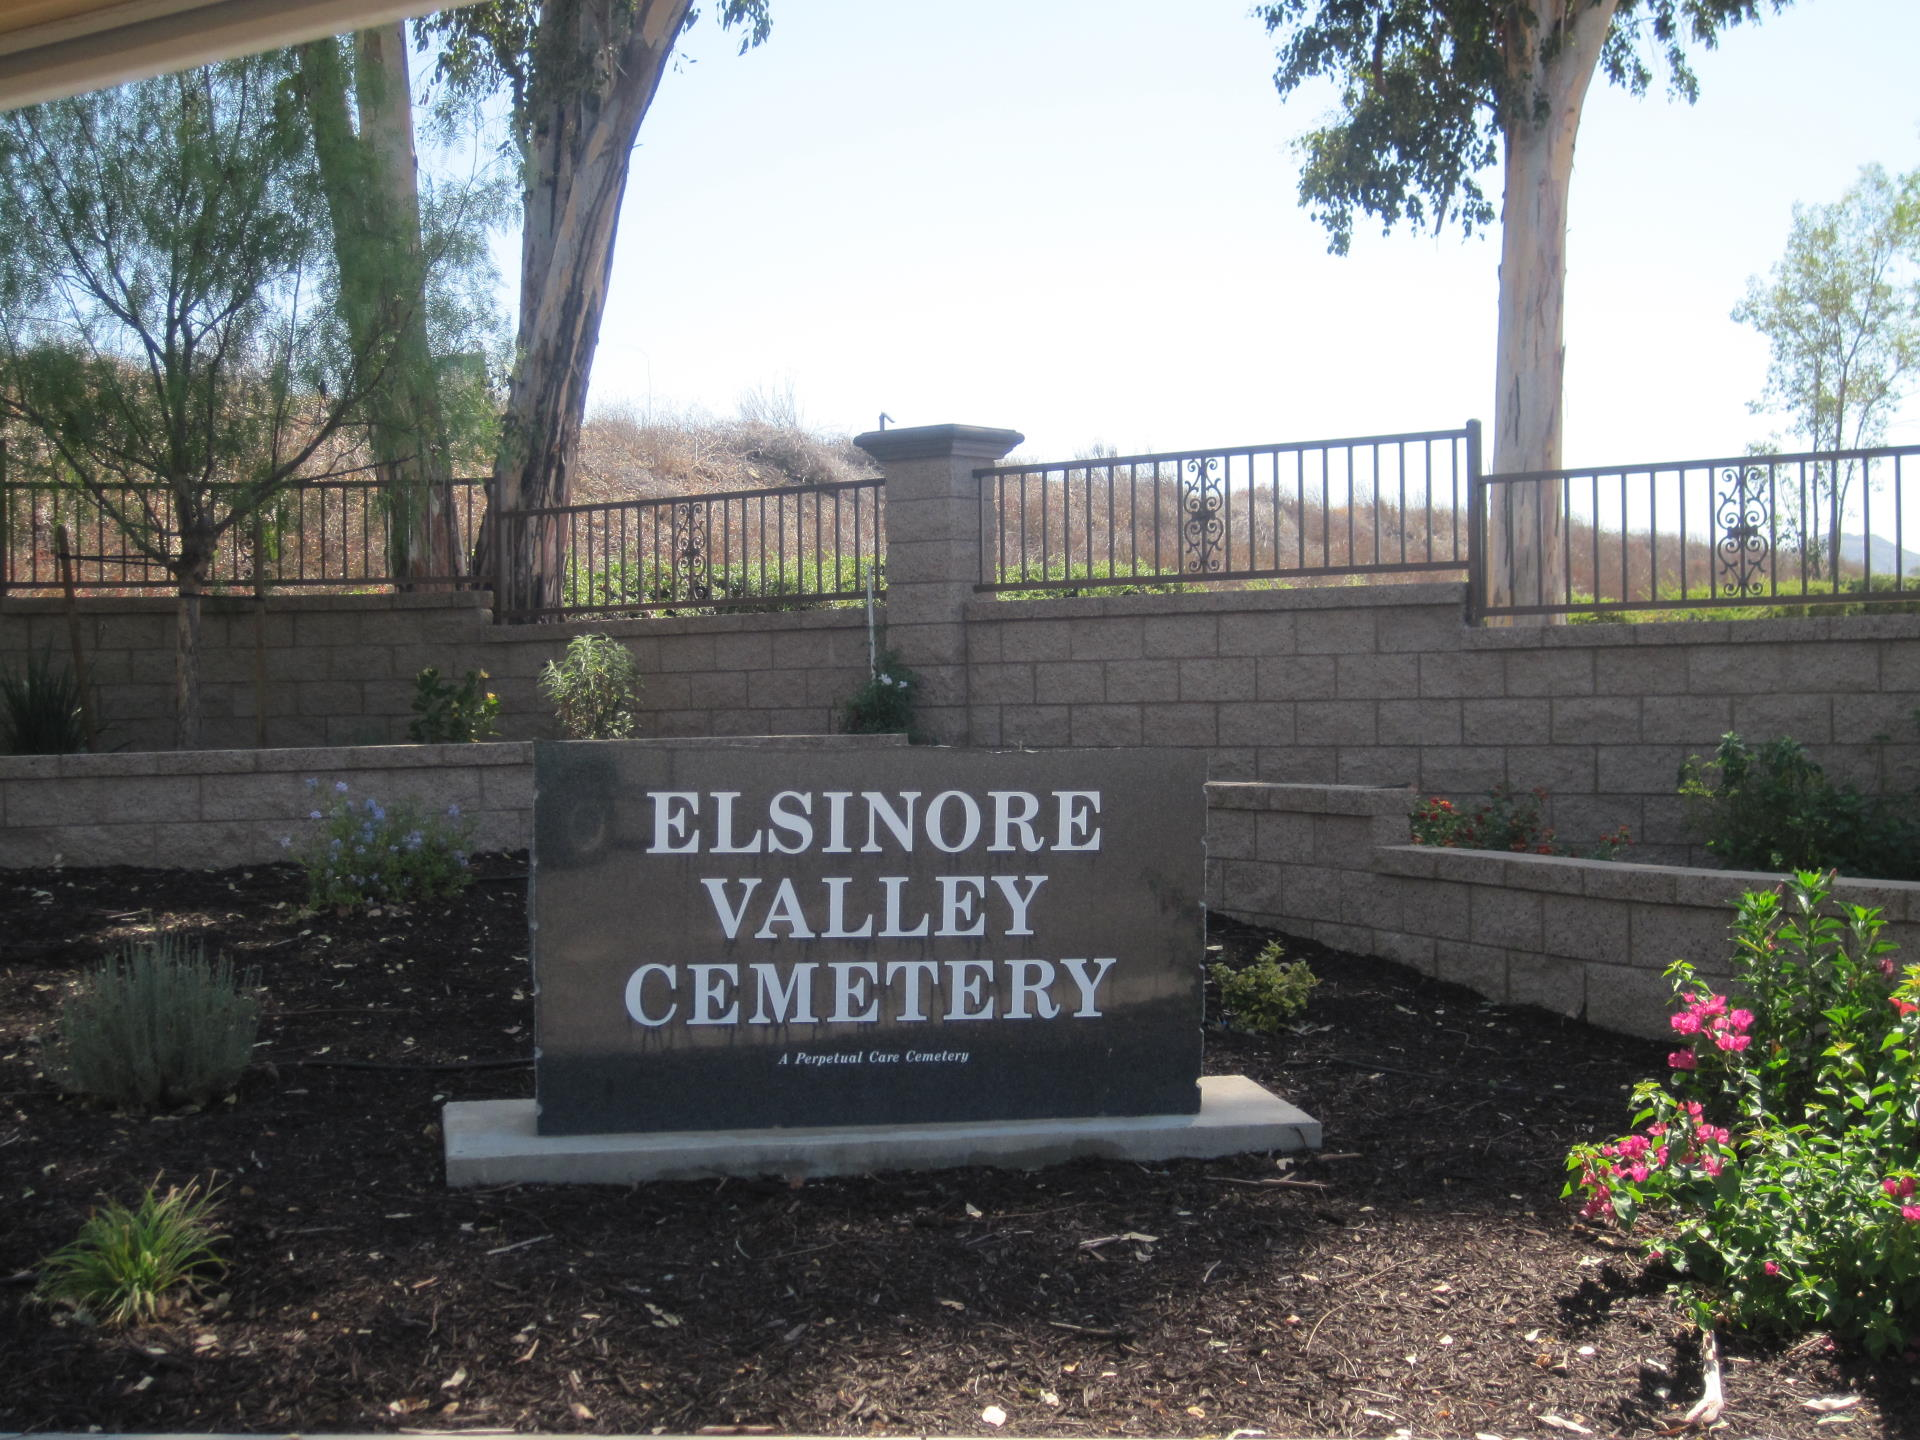 large stone sign saying Elsinore Valley Cemetery